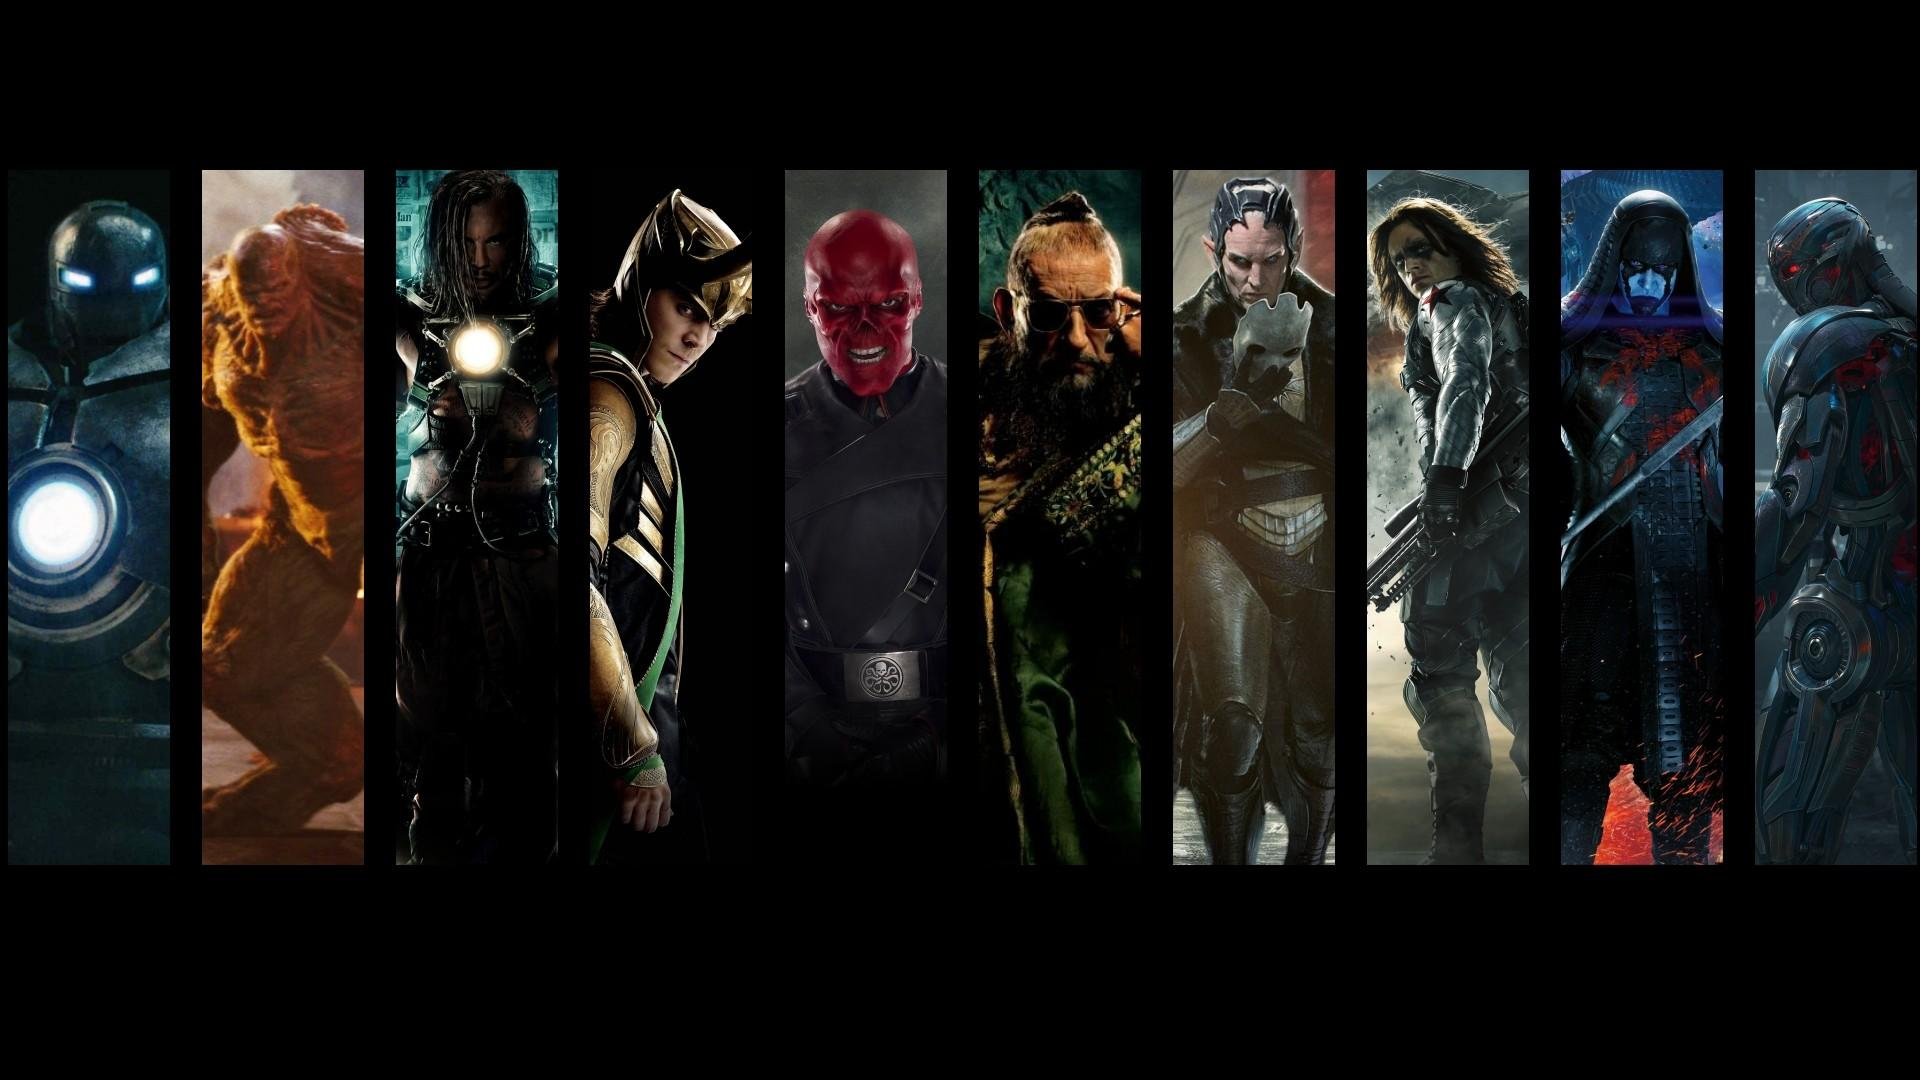 61+ Super Villain Wallpapers